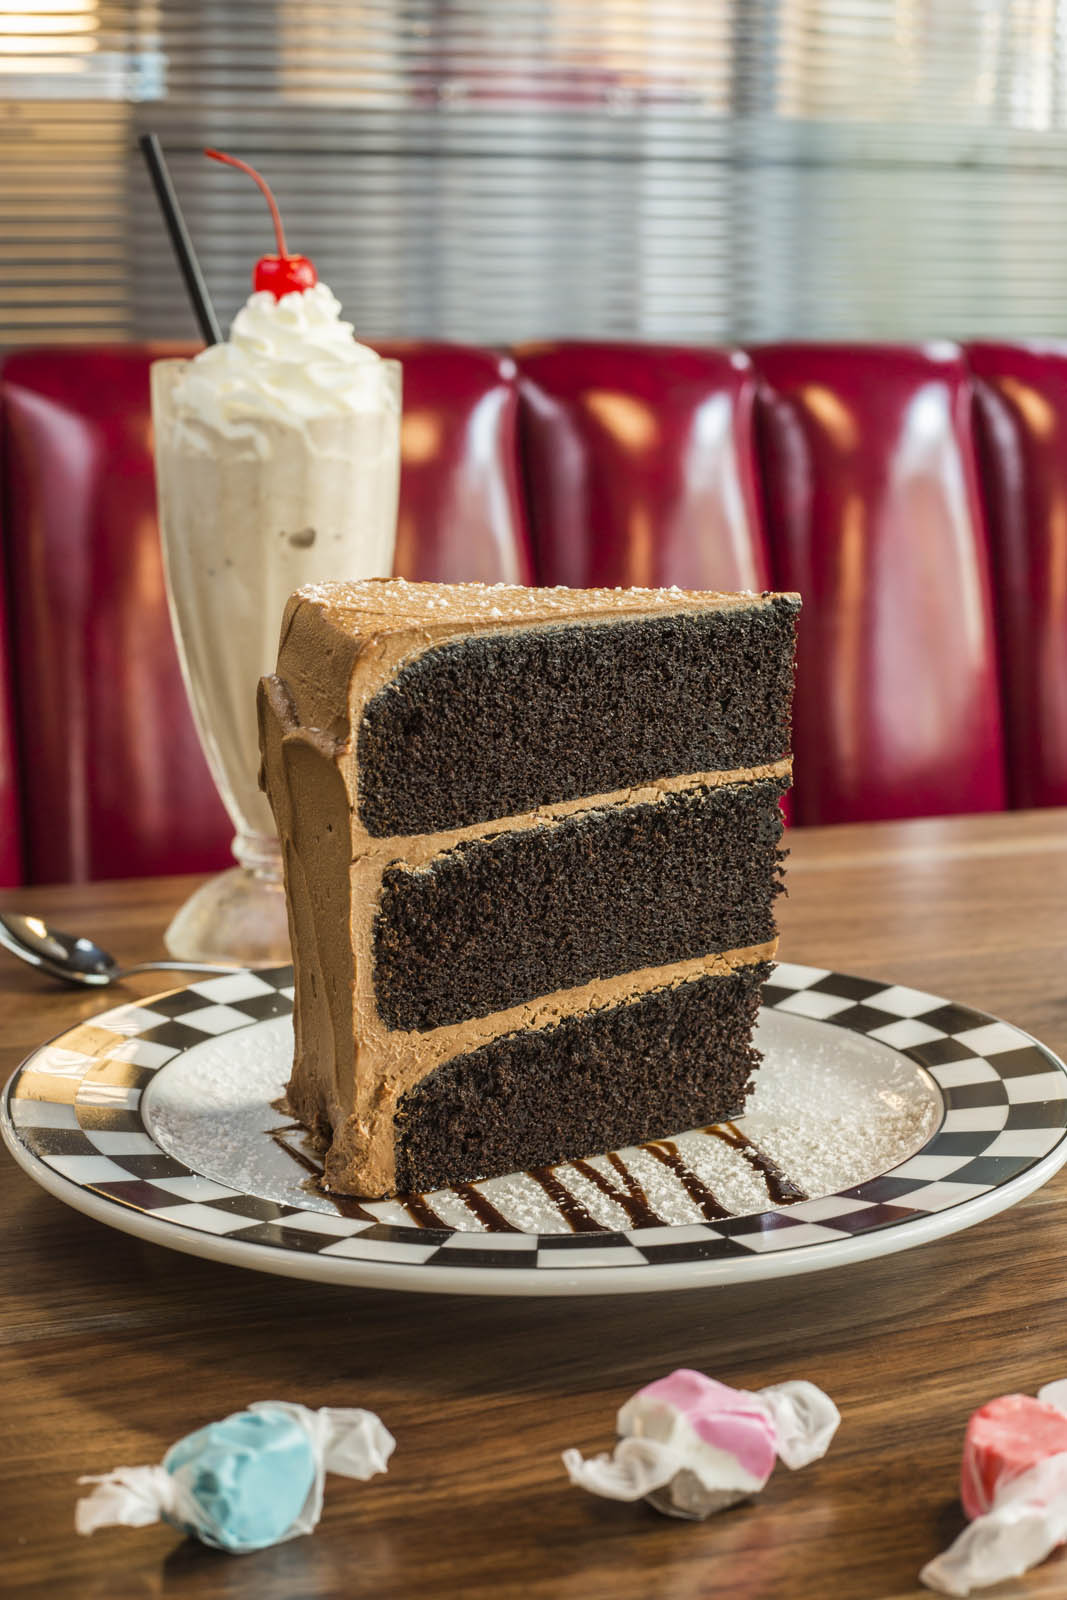 Cap City's famous seriously big chocolate cake